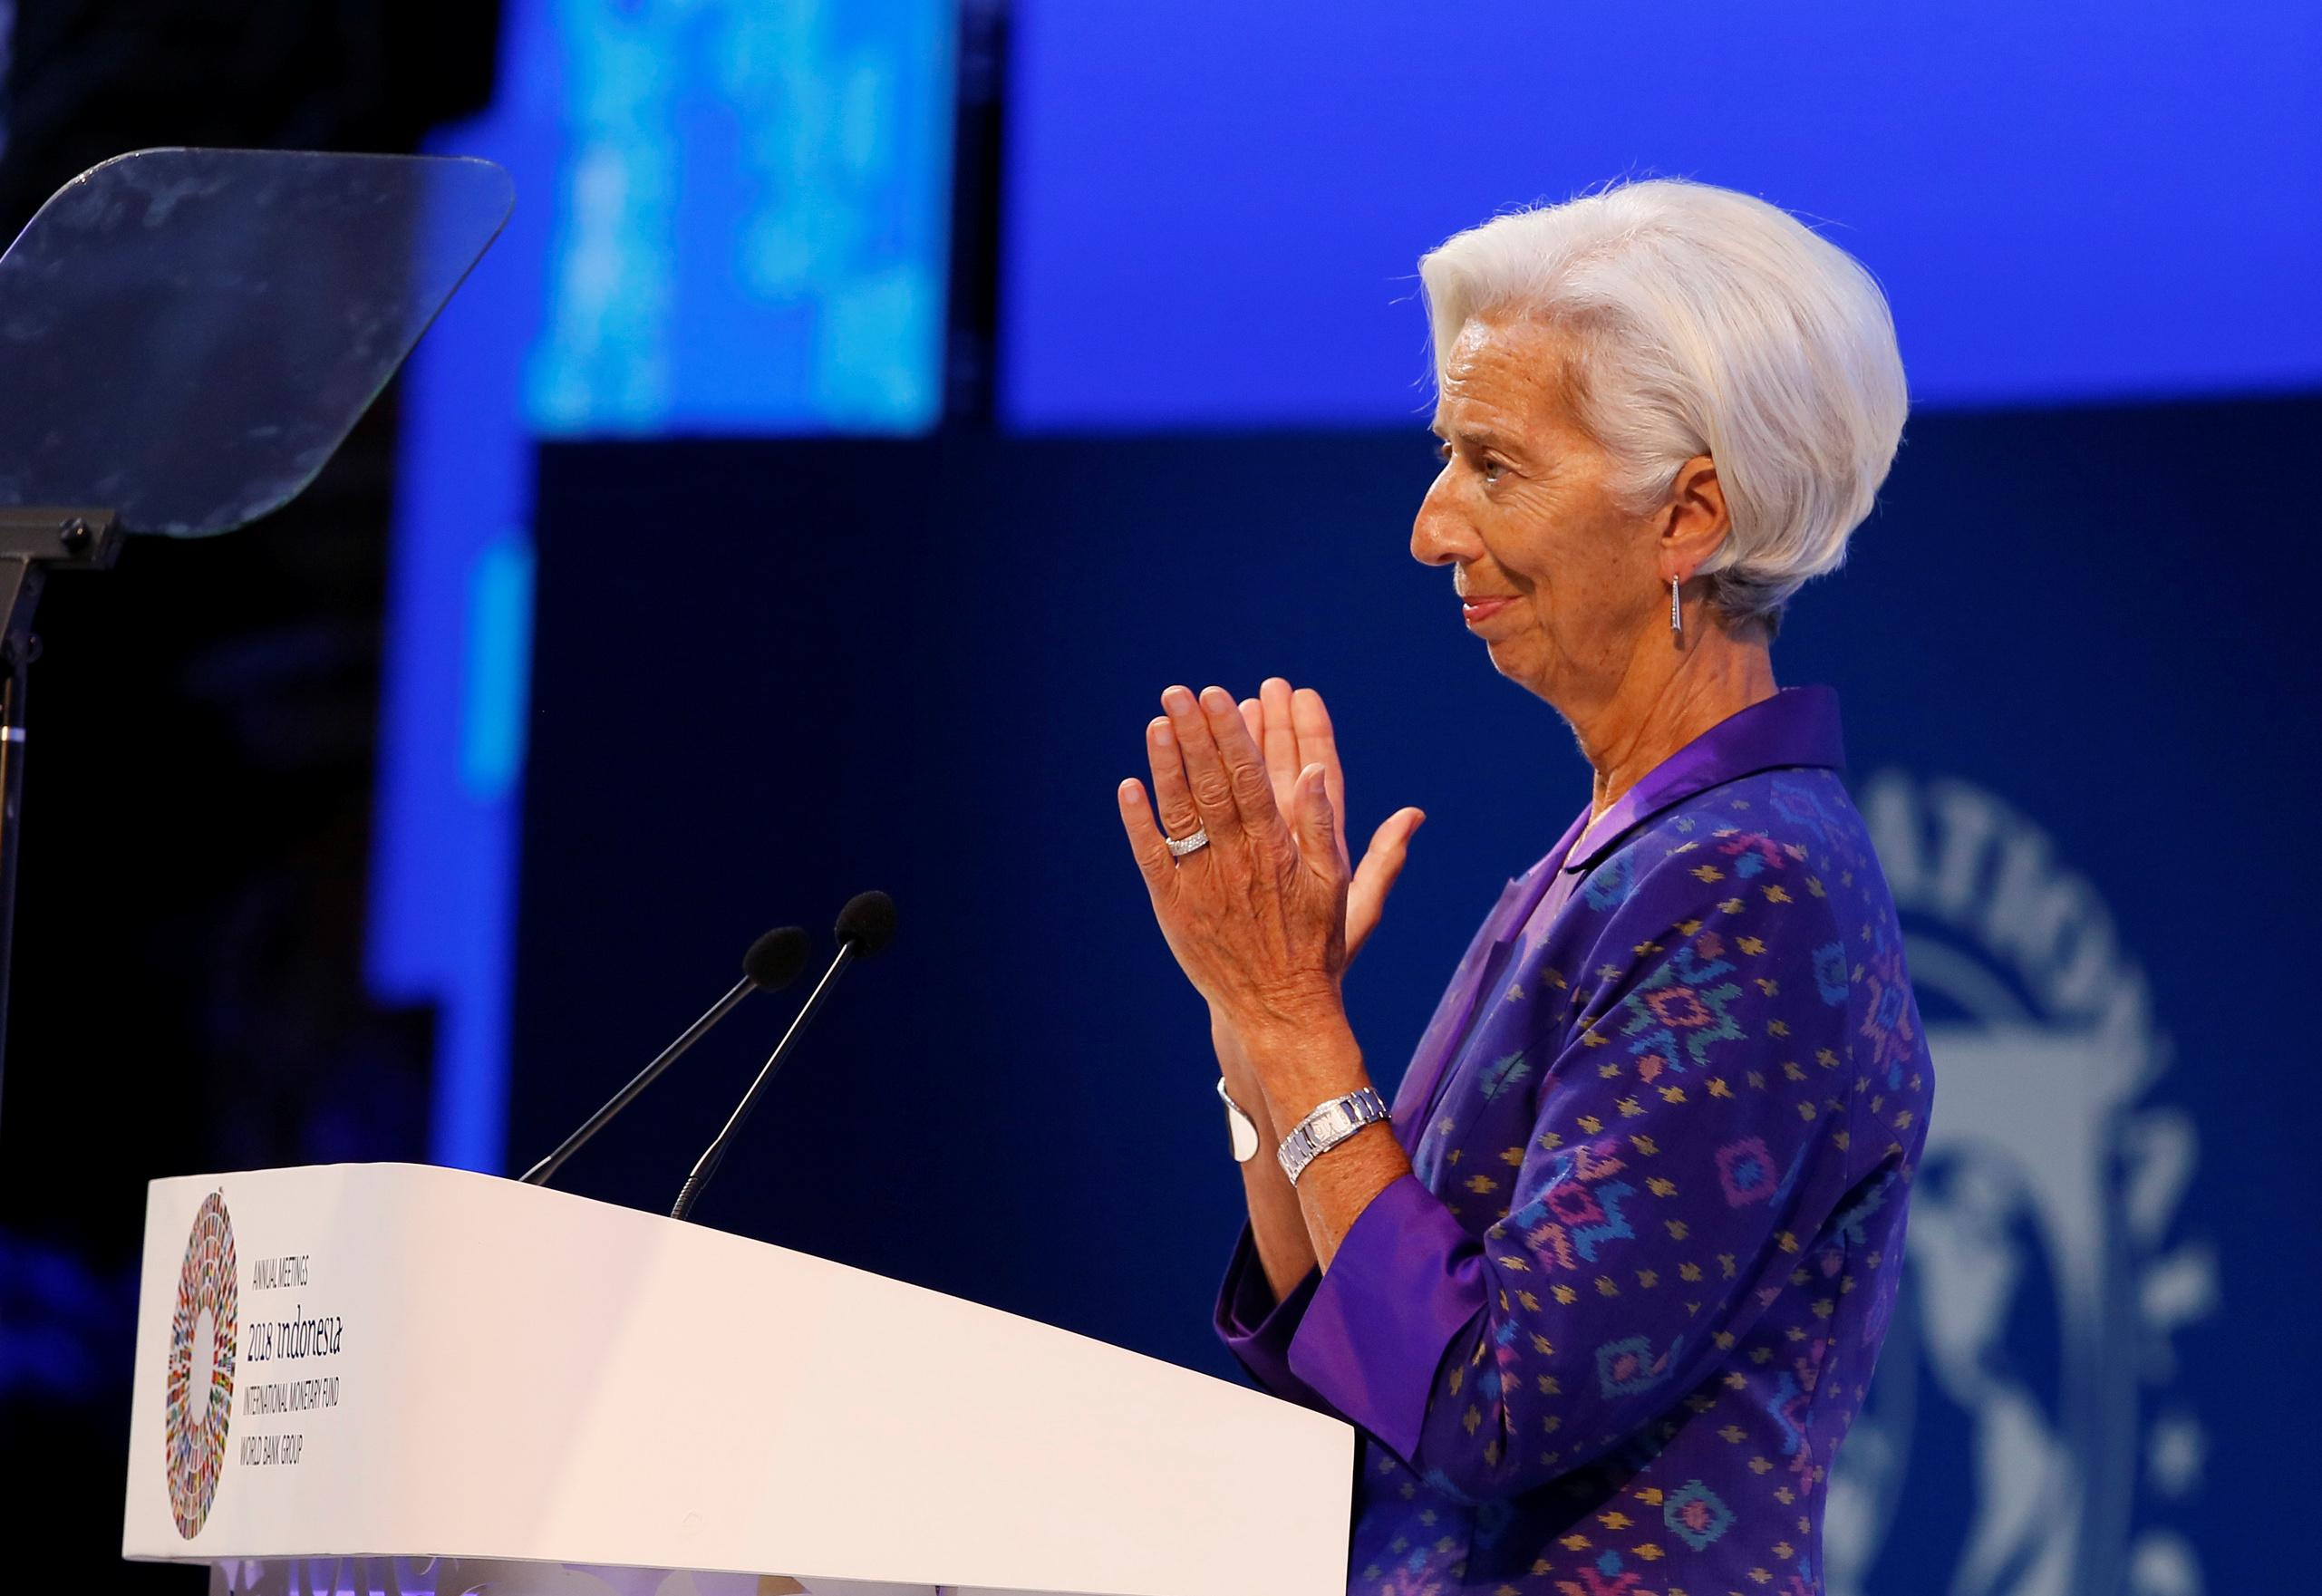 IMF Managing Director Christine Lagarde delivers a speech during a plenary session at International Monetary Fund - World Bank Annual Meeting 2018 in Nusa Dua, Bali, Indonesia, October 12, 2018. Johannes P. Christo